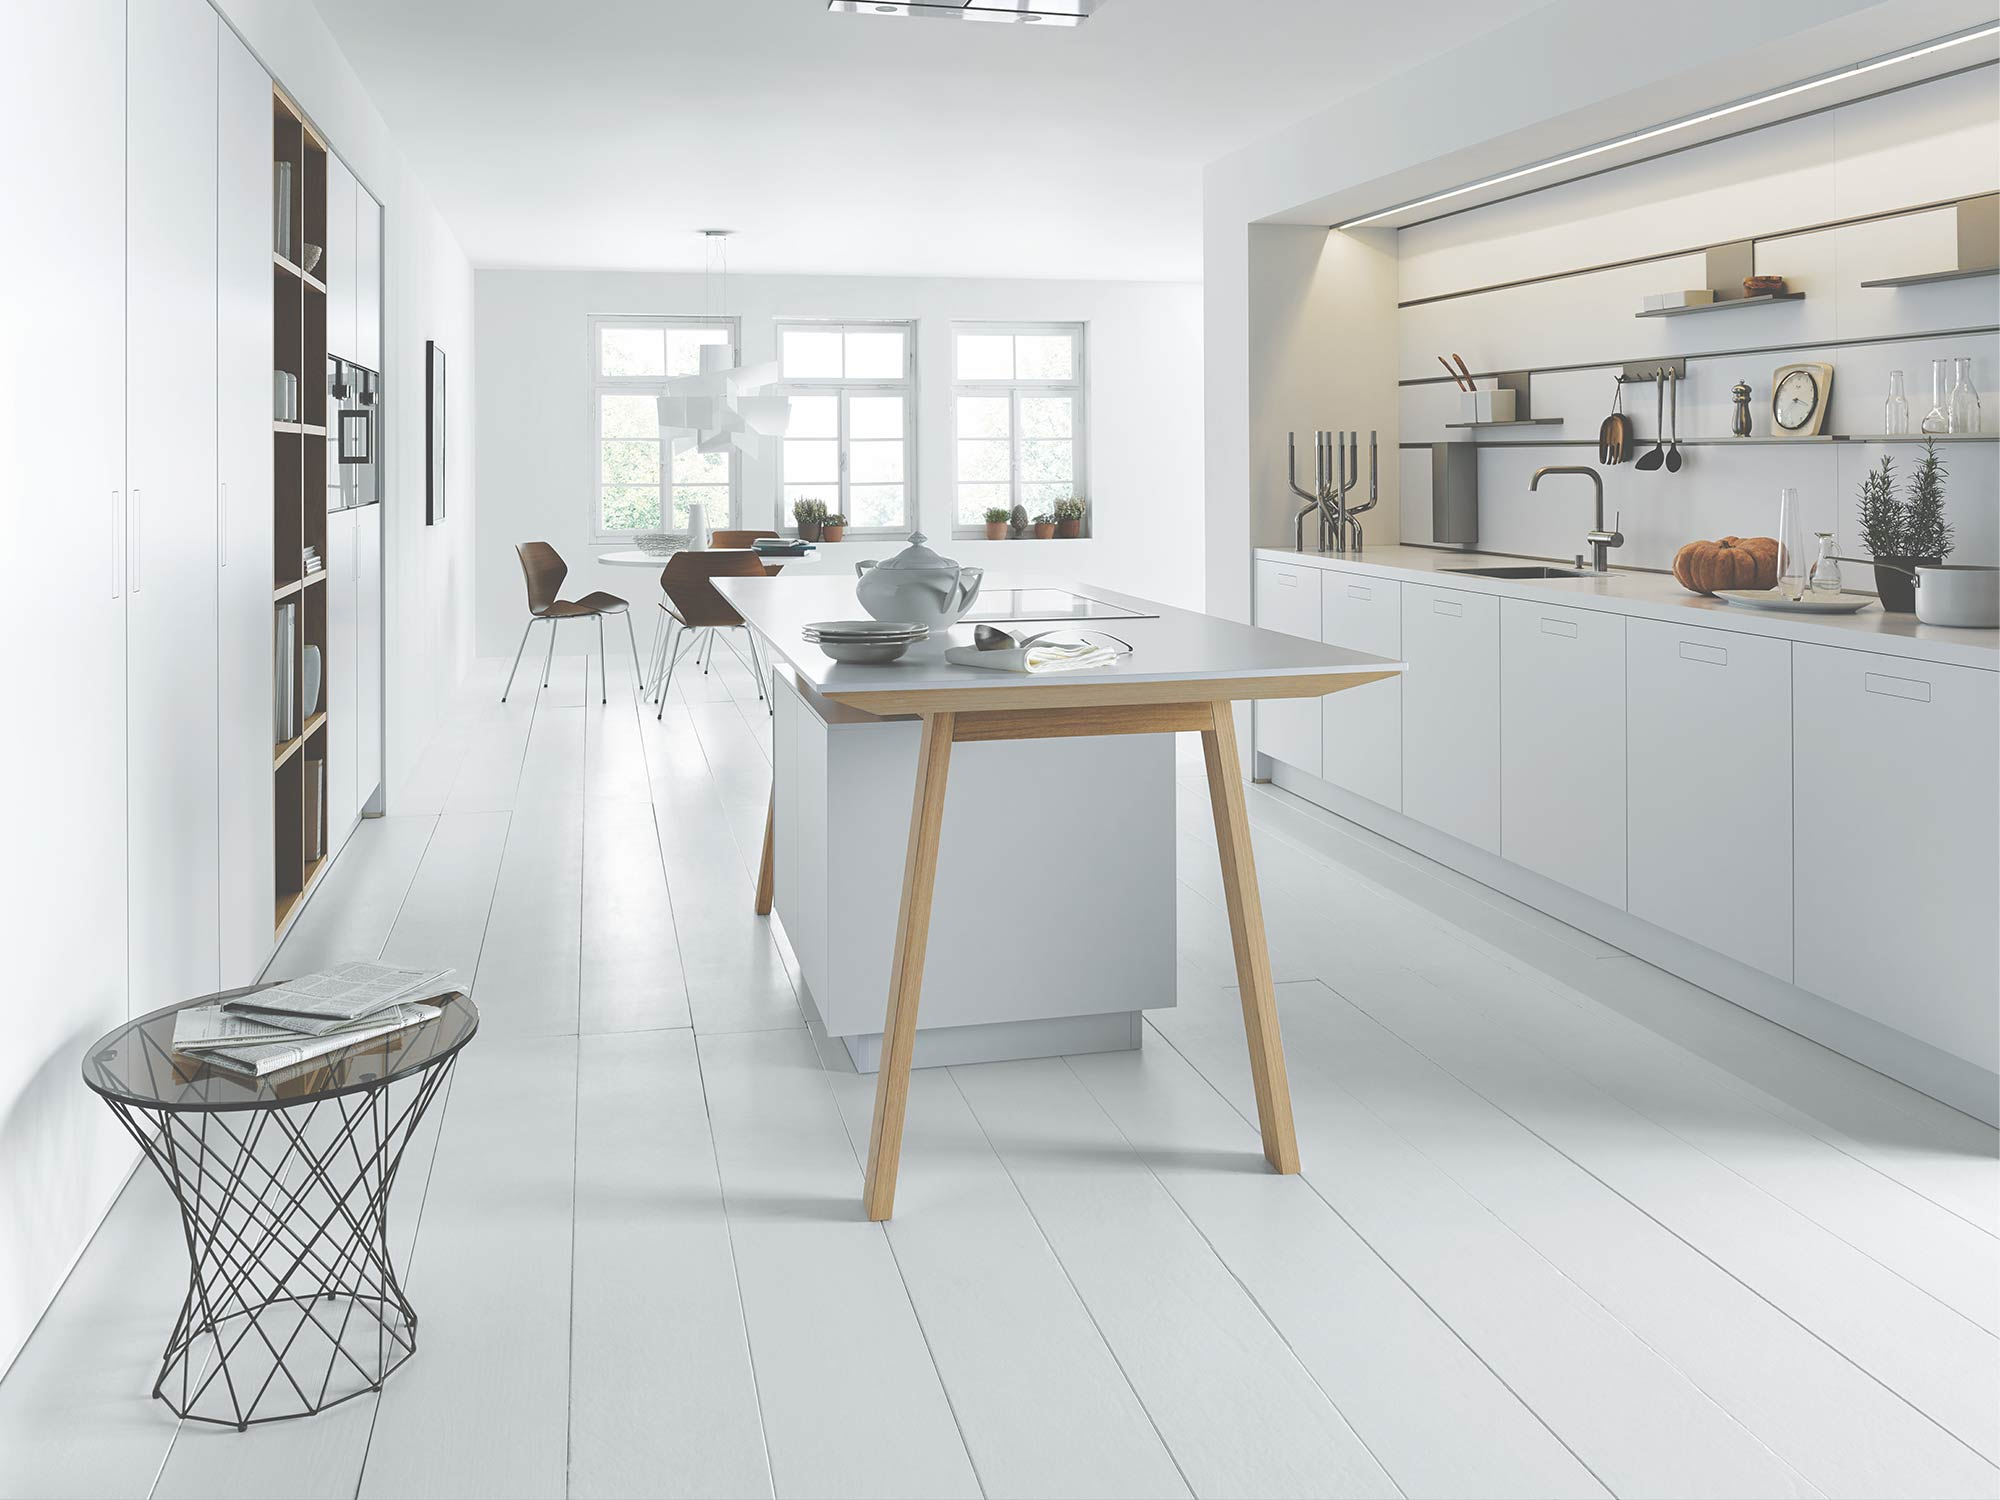 Clean white kitchen and breakfast room design by Hubble